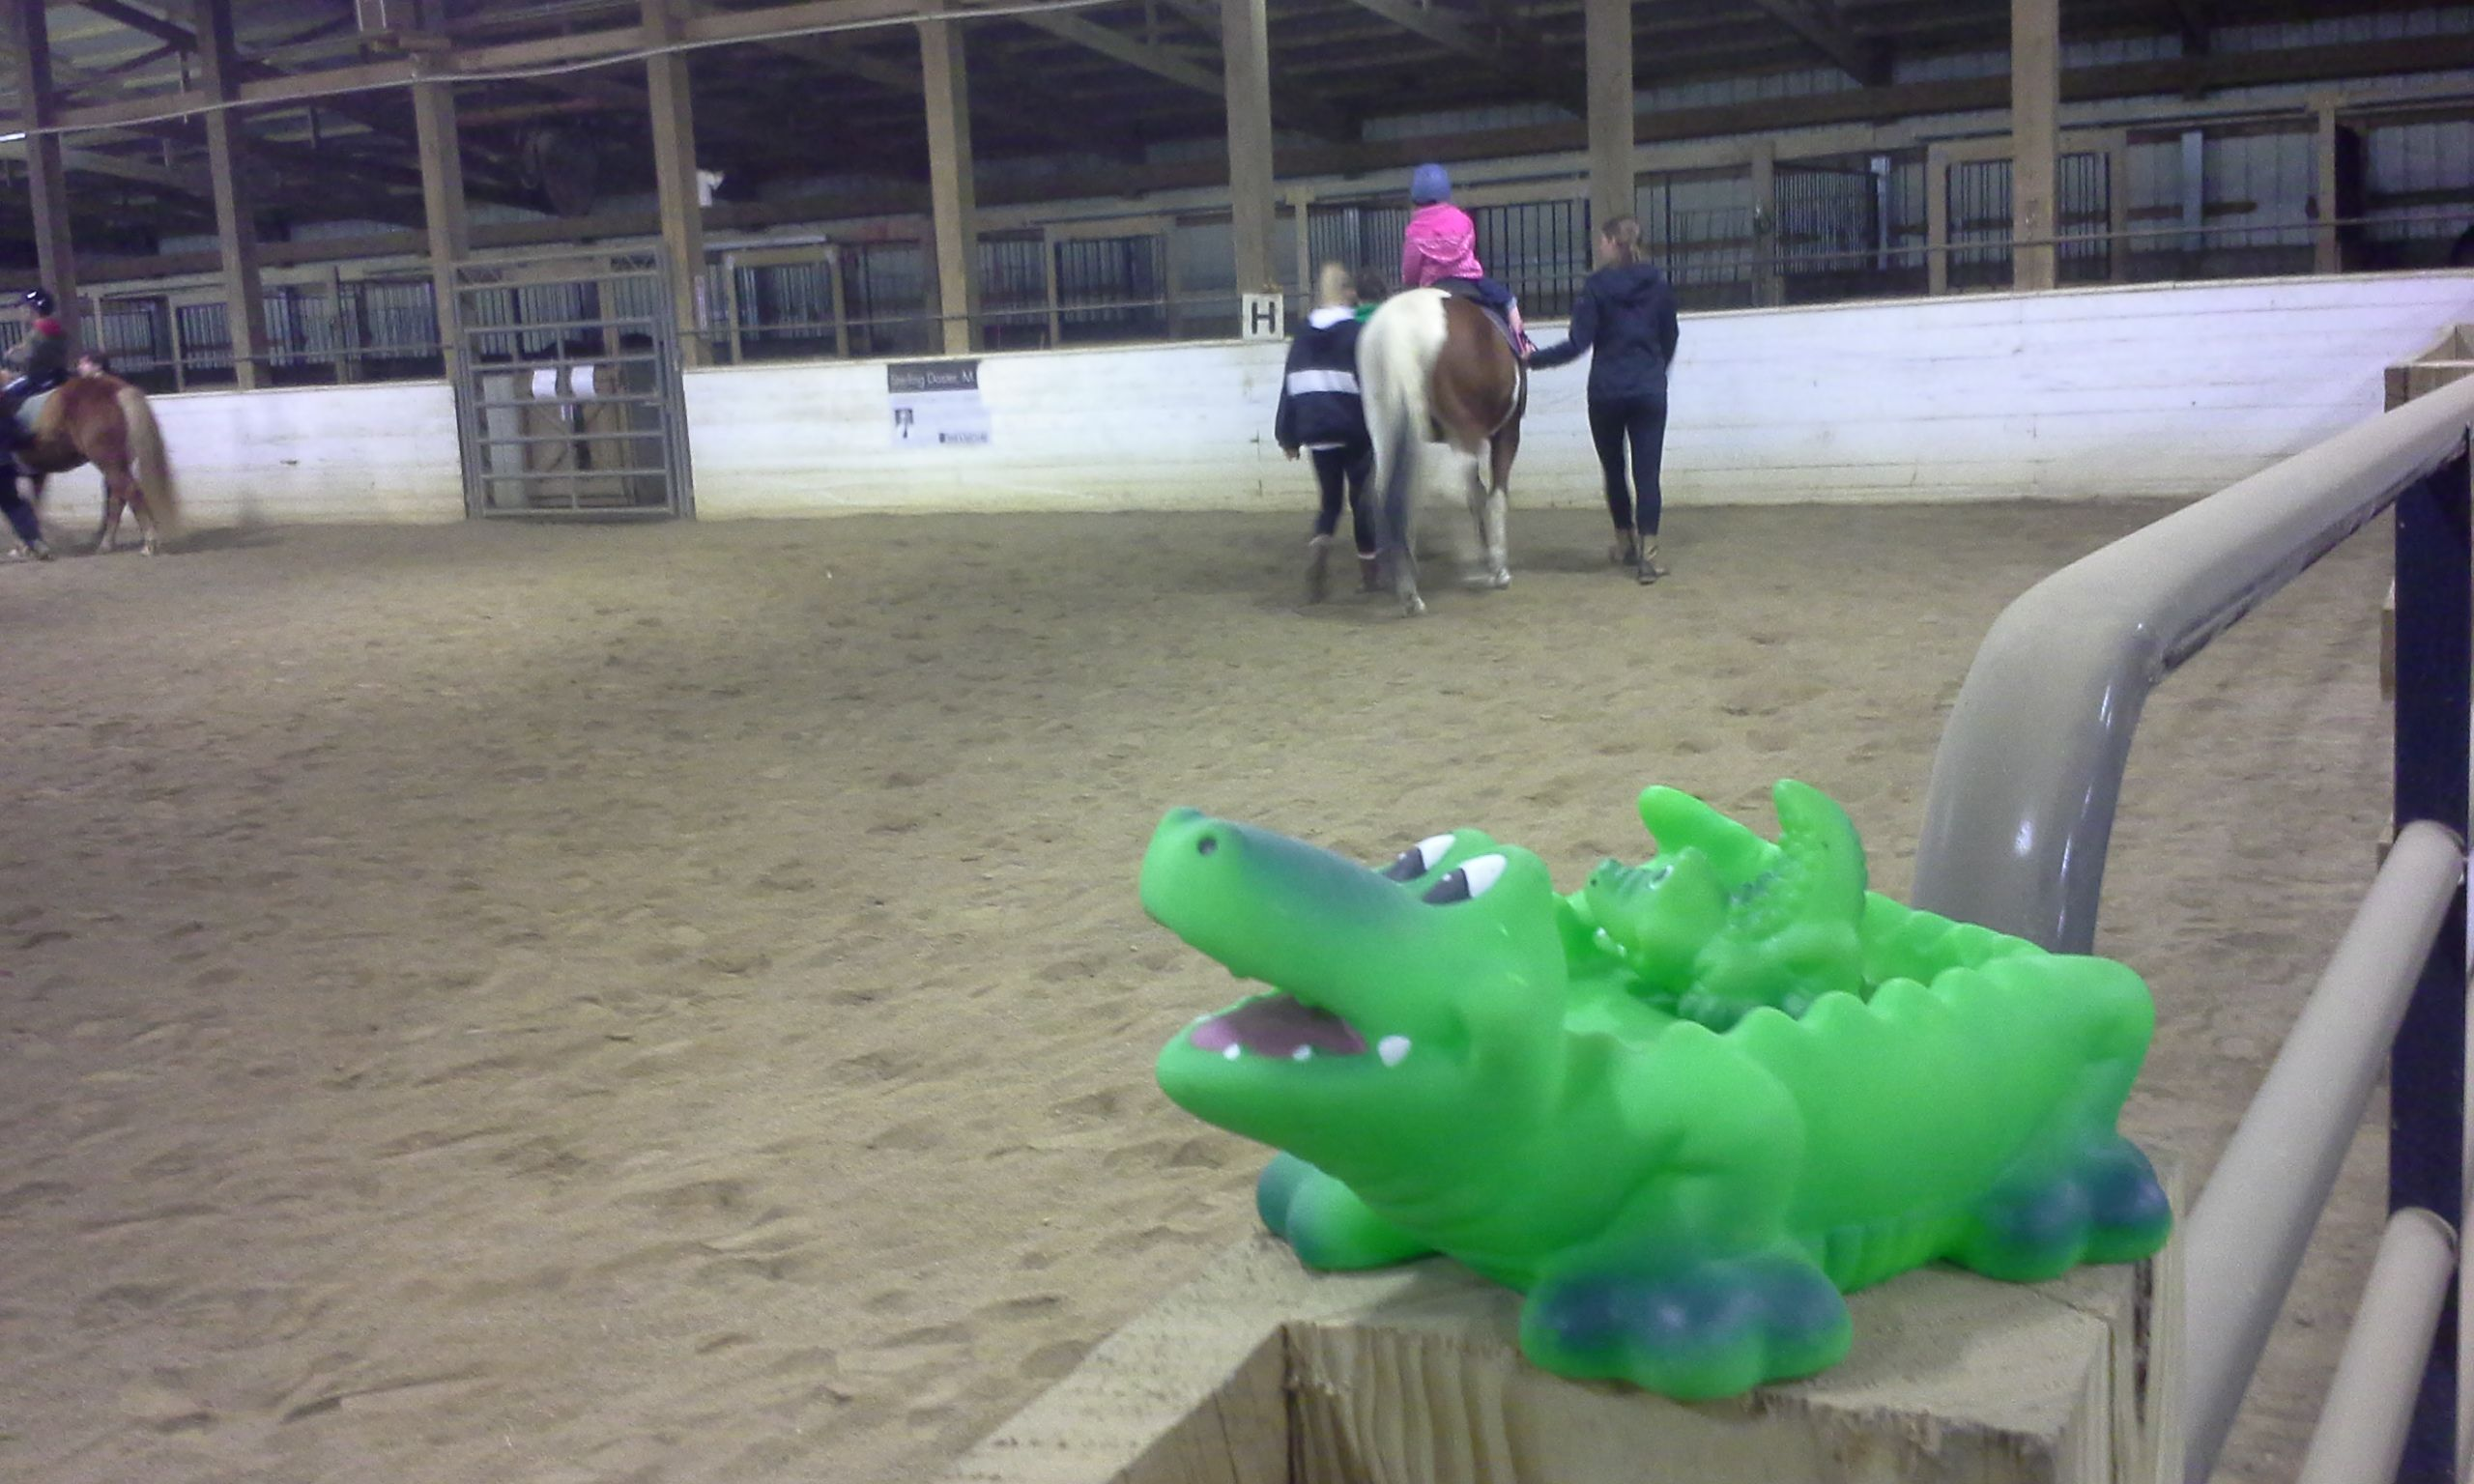 Games teach riding skills and horse knowledge while ...